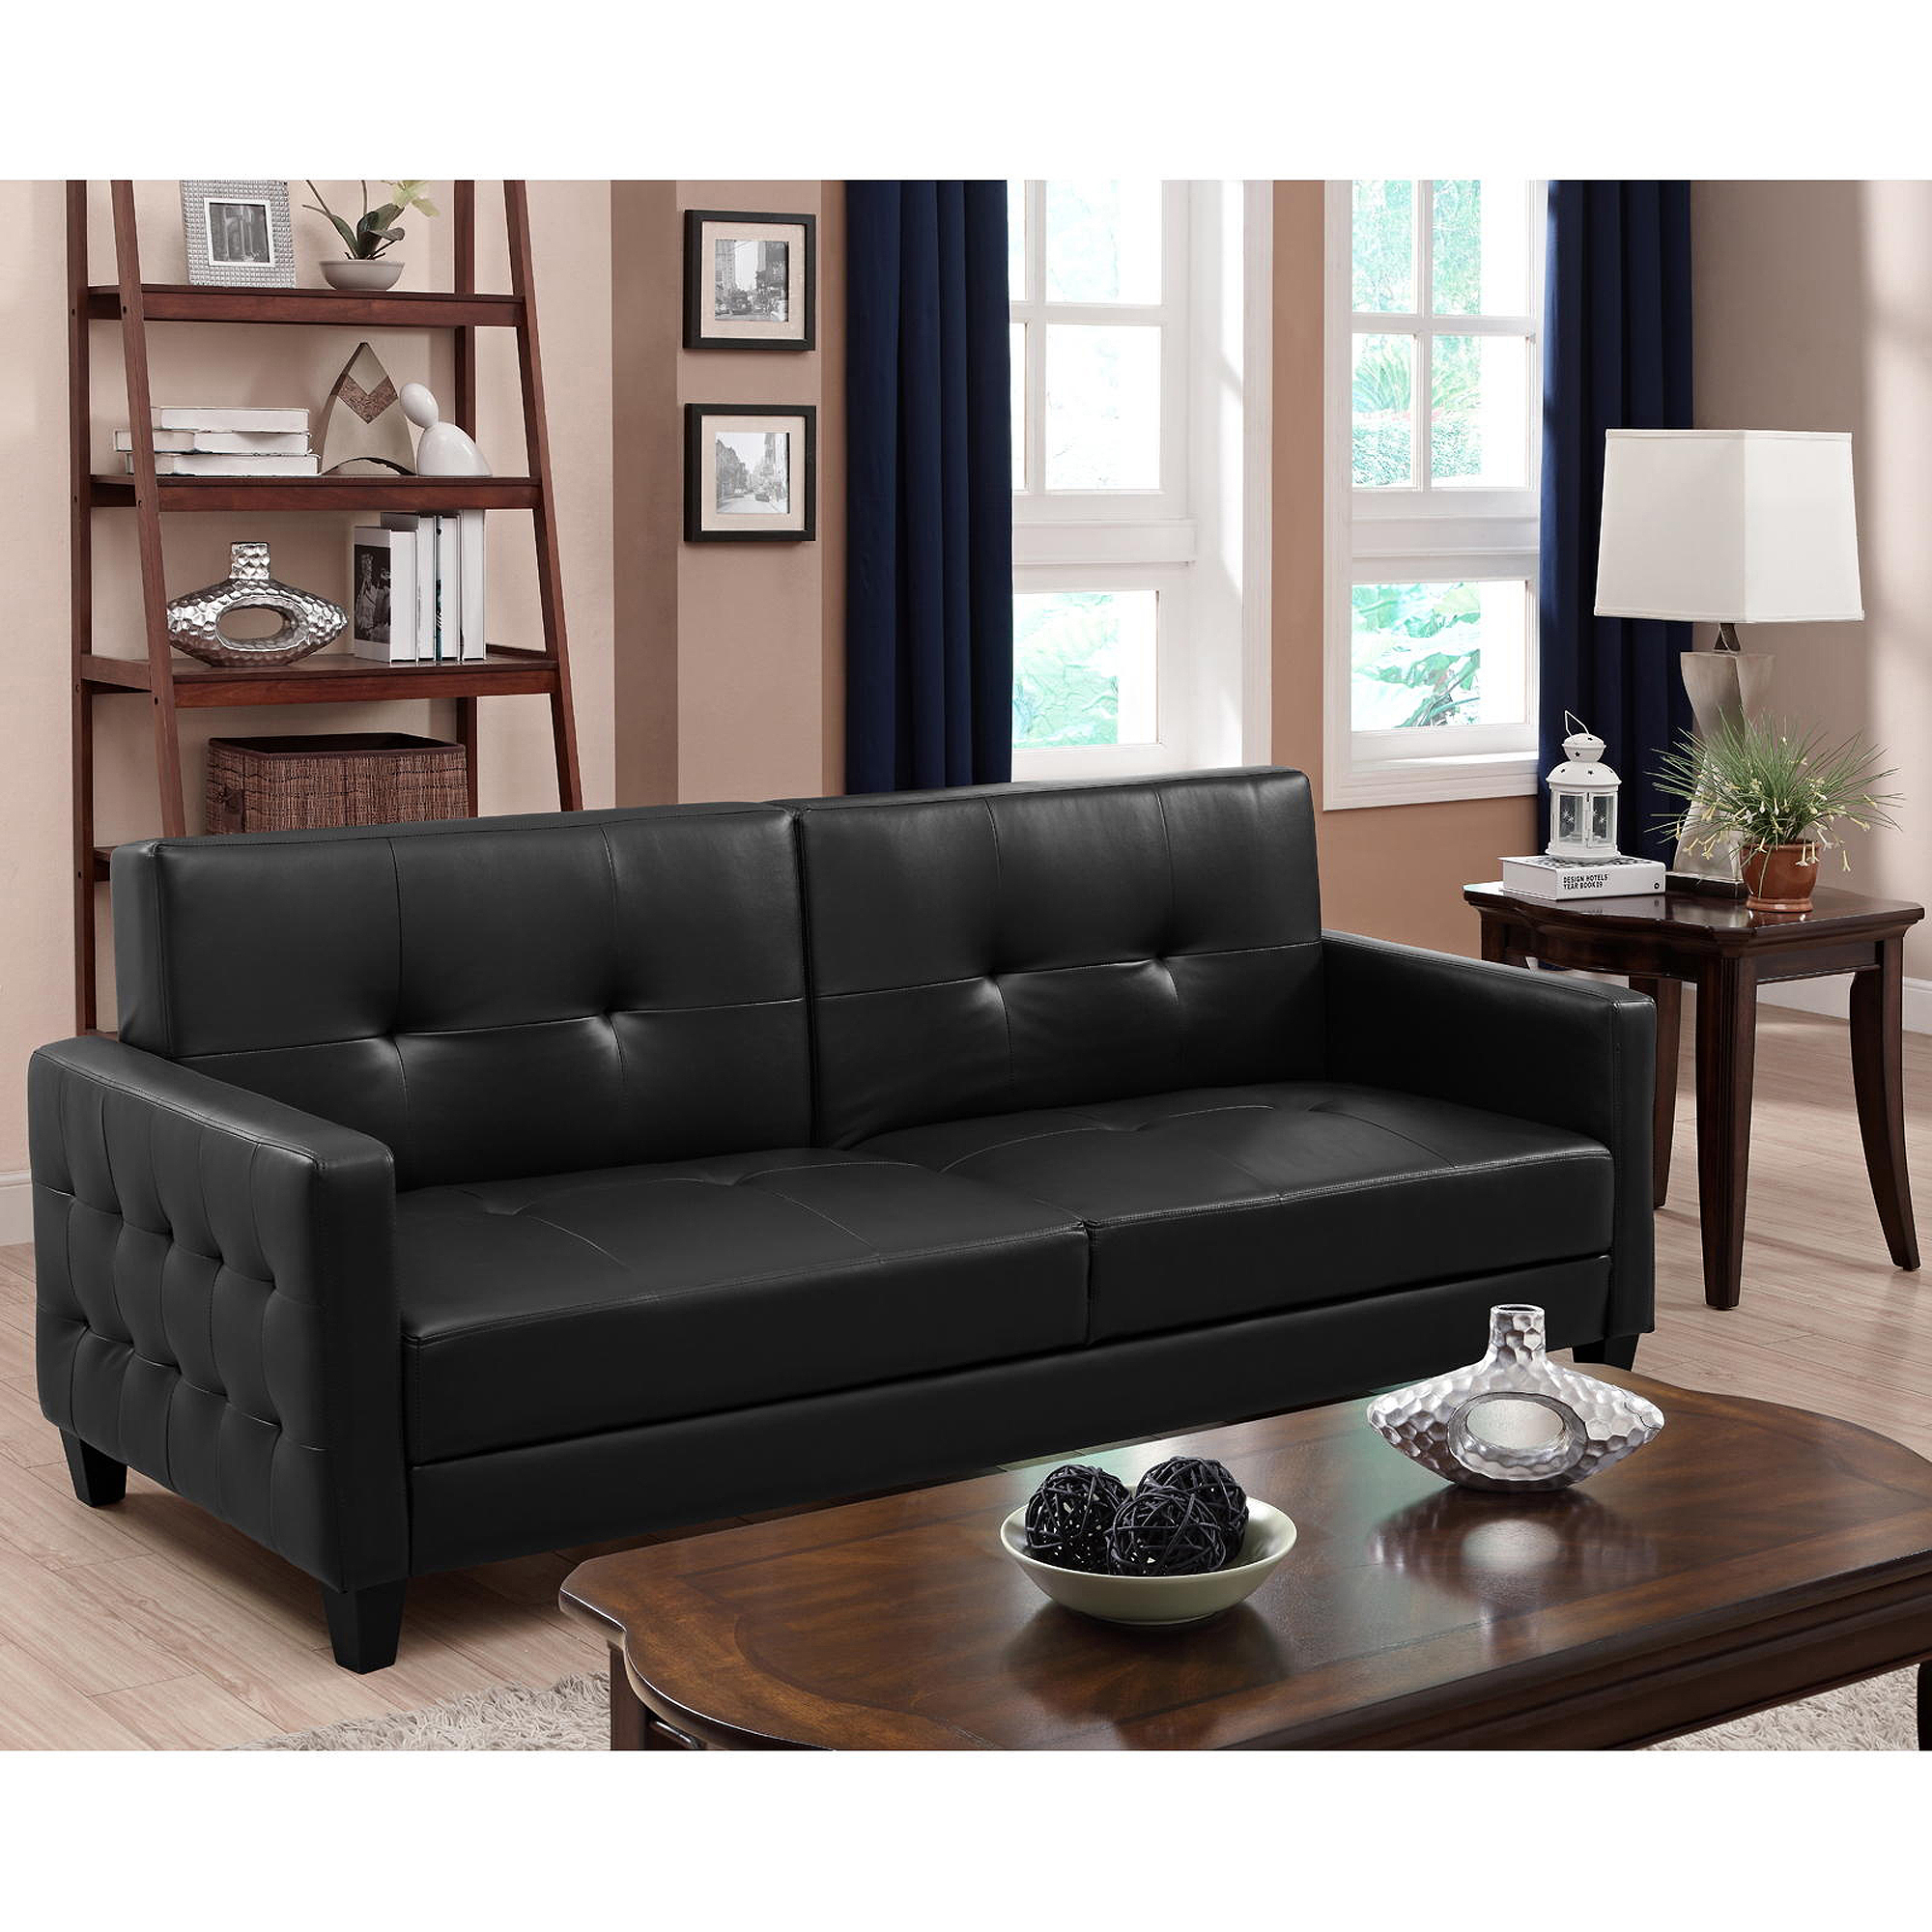 Premium Rome Convertible Futon Multiple Colors Walmart